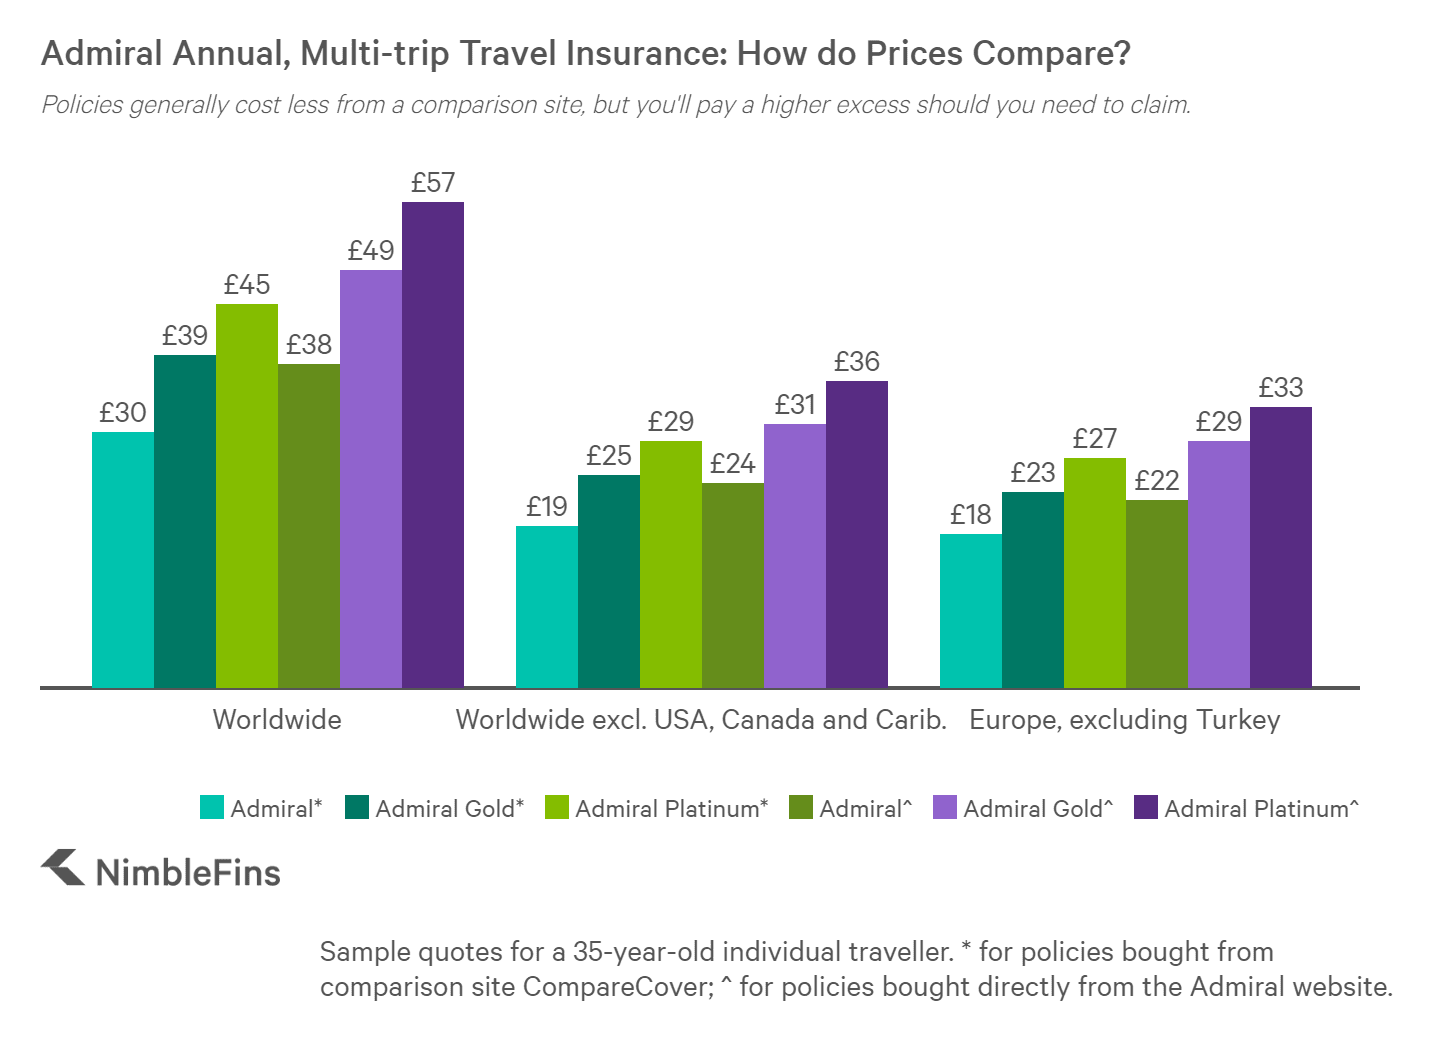 chart showing Admiral multi-trip travel insurance prices compared to market averages